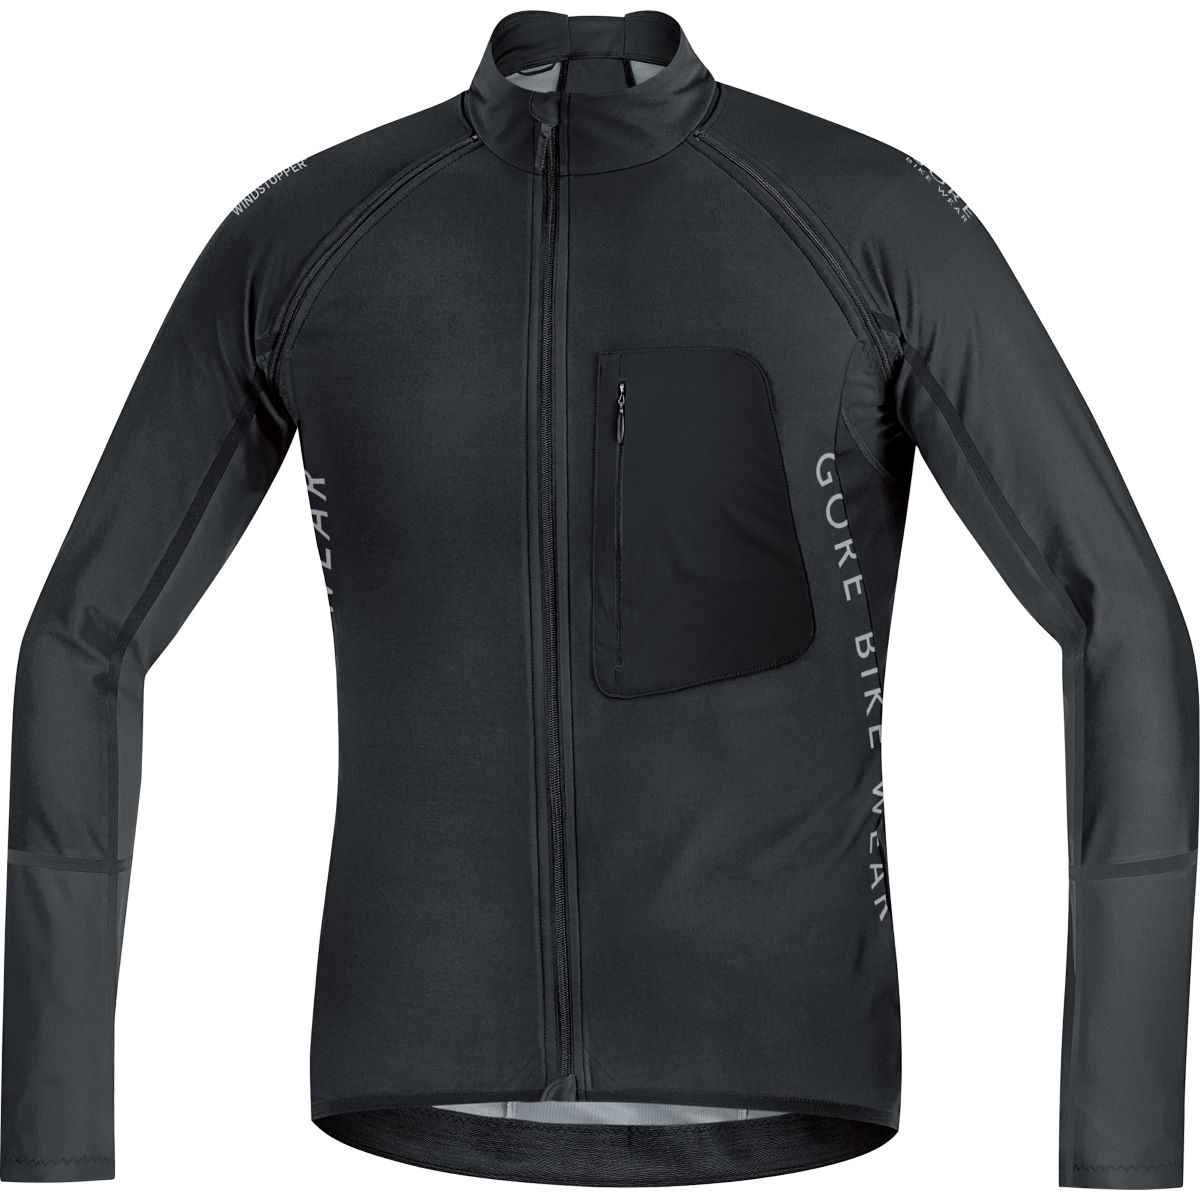 Veste Gore Bike Wear Alp-X Pro Windstopper Softshell (zippée) - L Noir/Noir Coupe-vents vélo